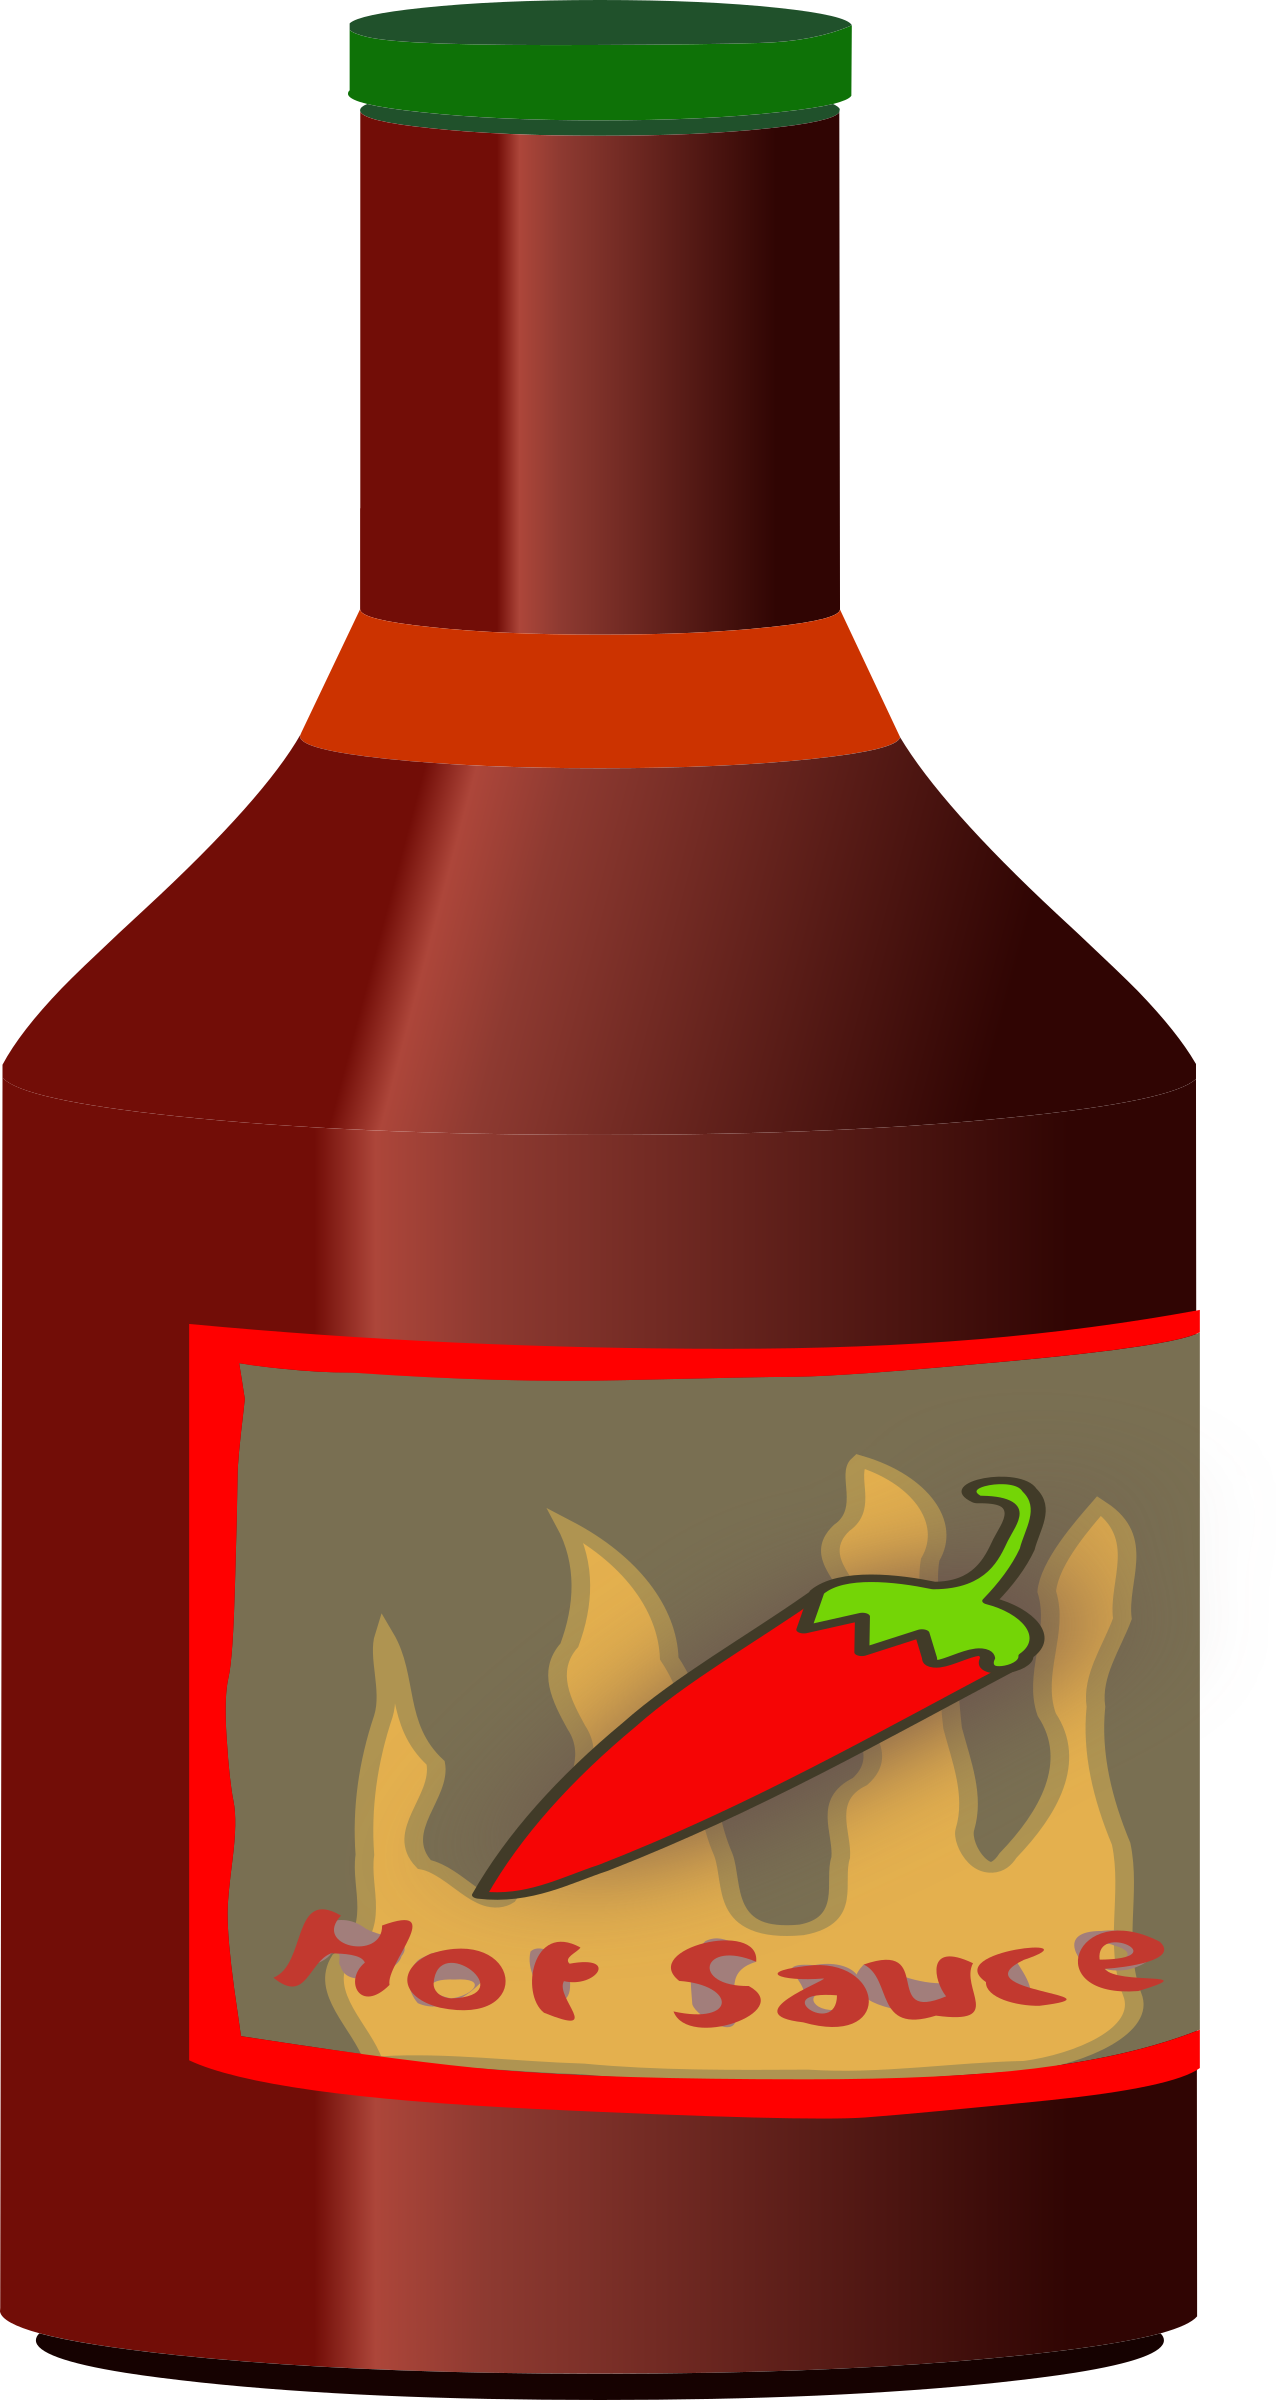 Bottle of hot sauce vector clipart image.